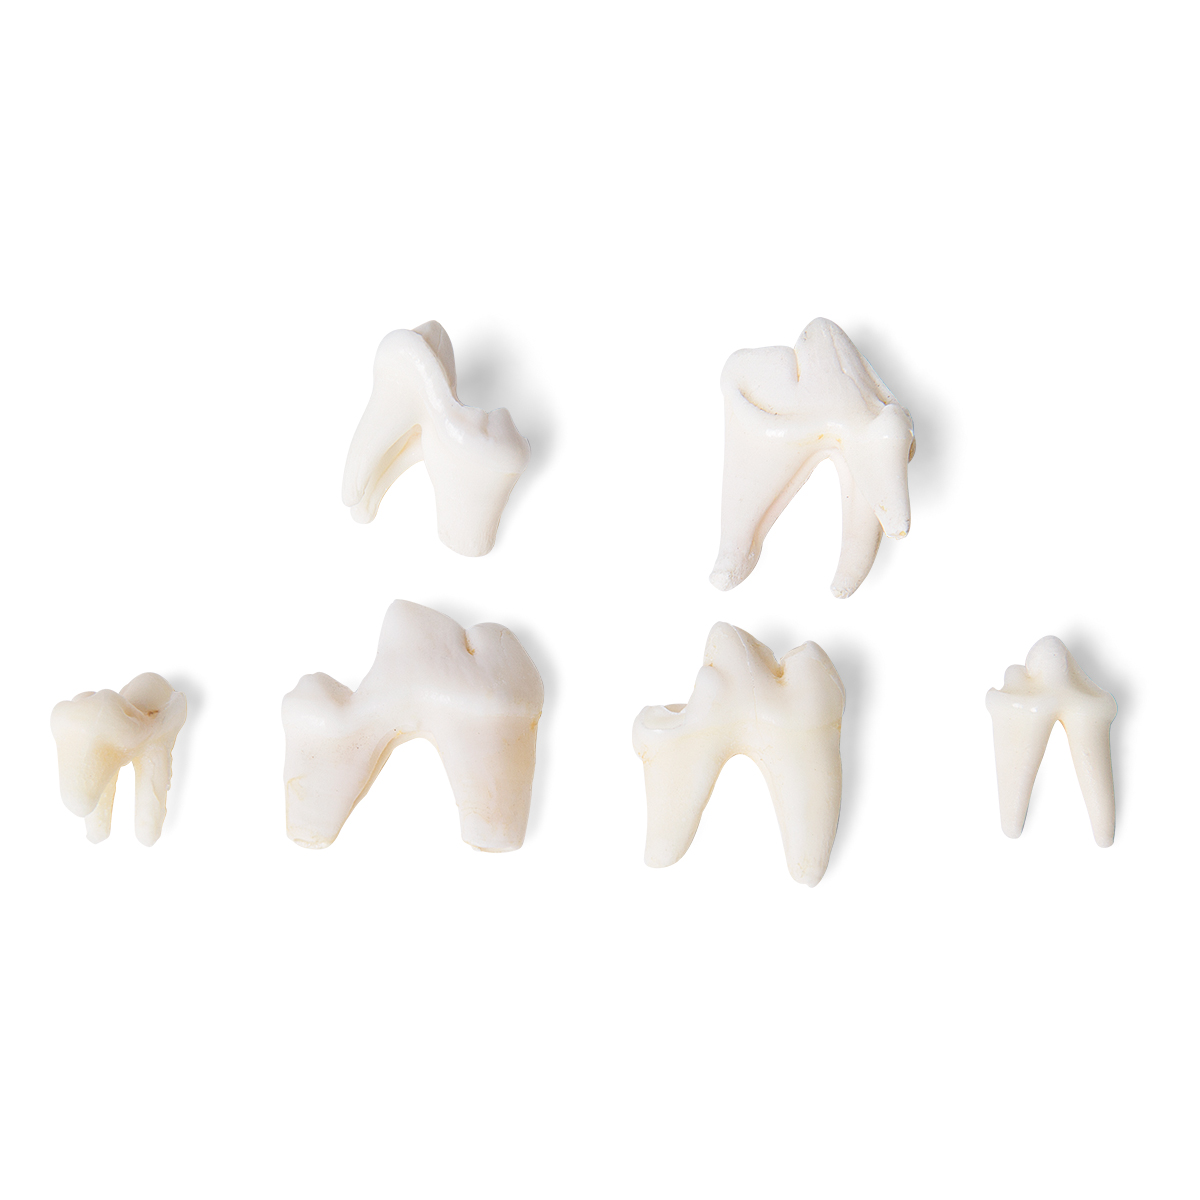 Tooth Types Of Different Mammals Mammalia